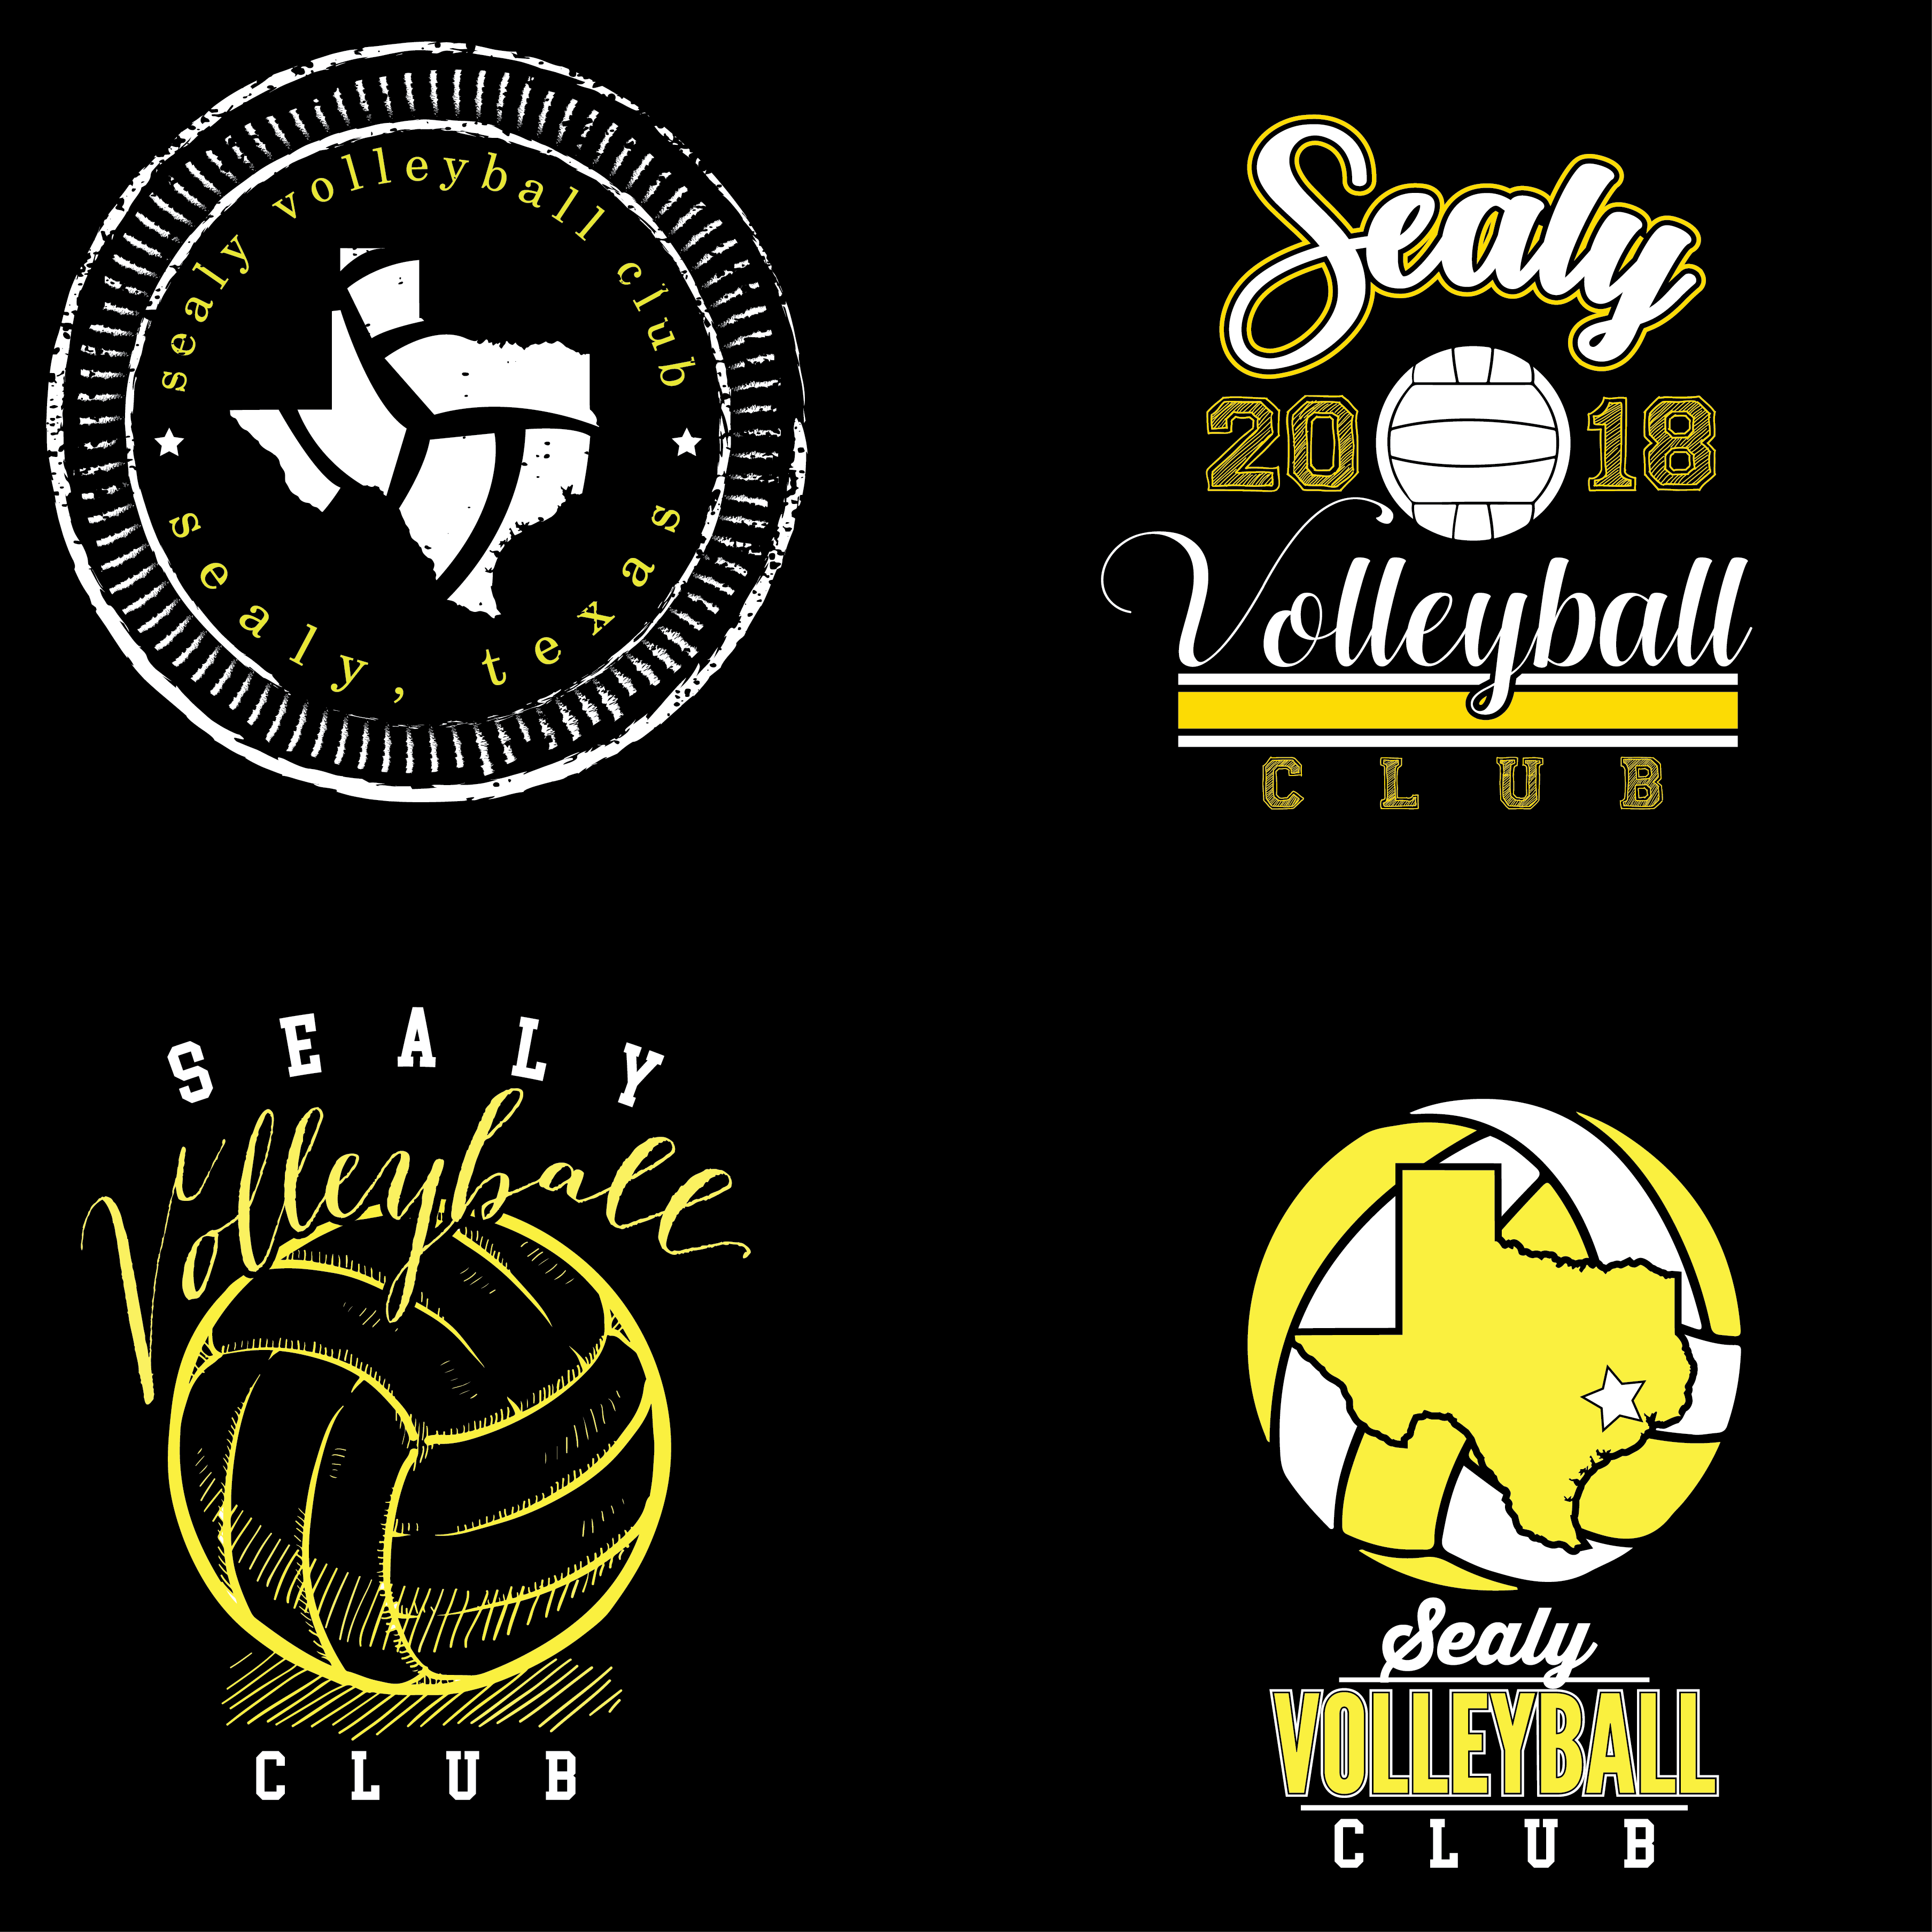 sealy volleyball club 2017